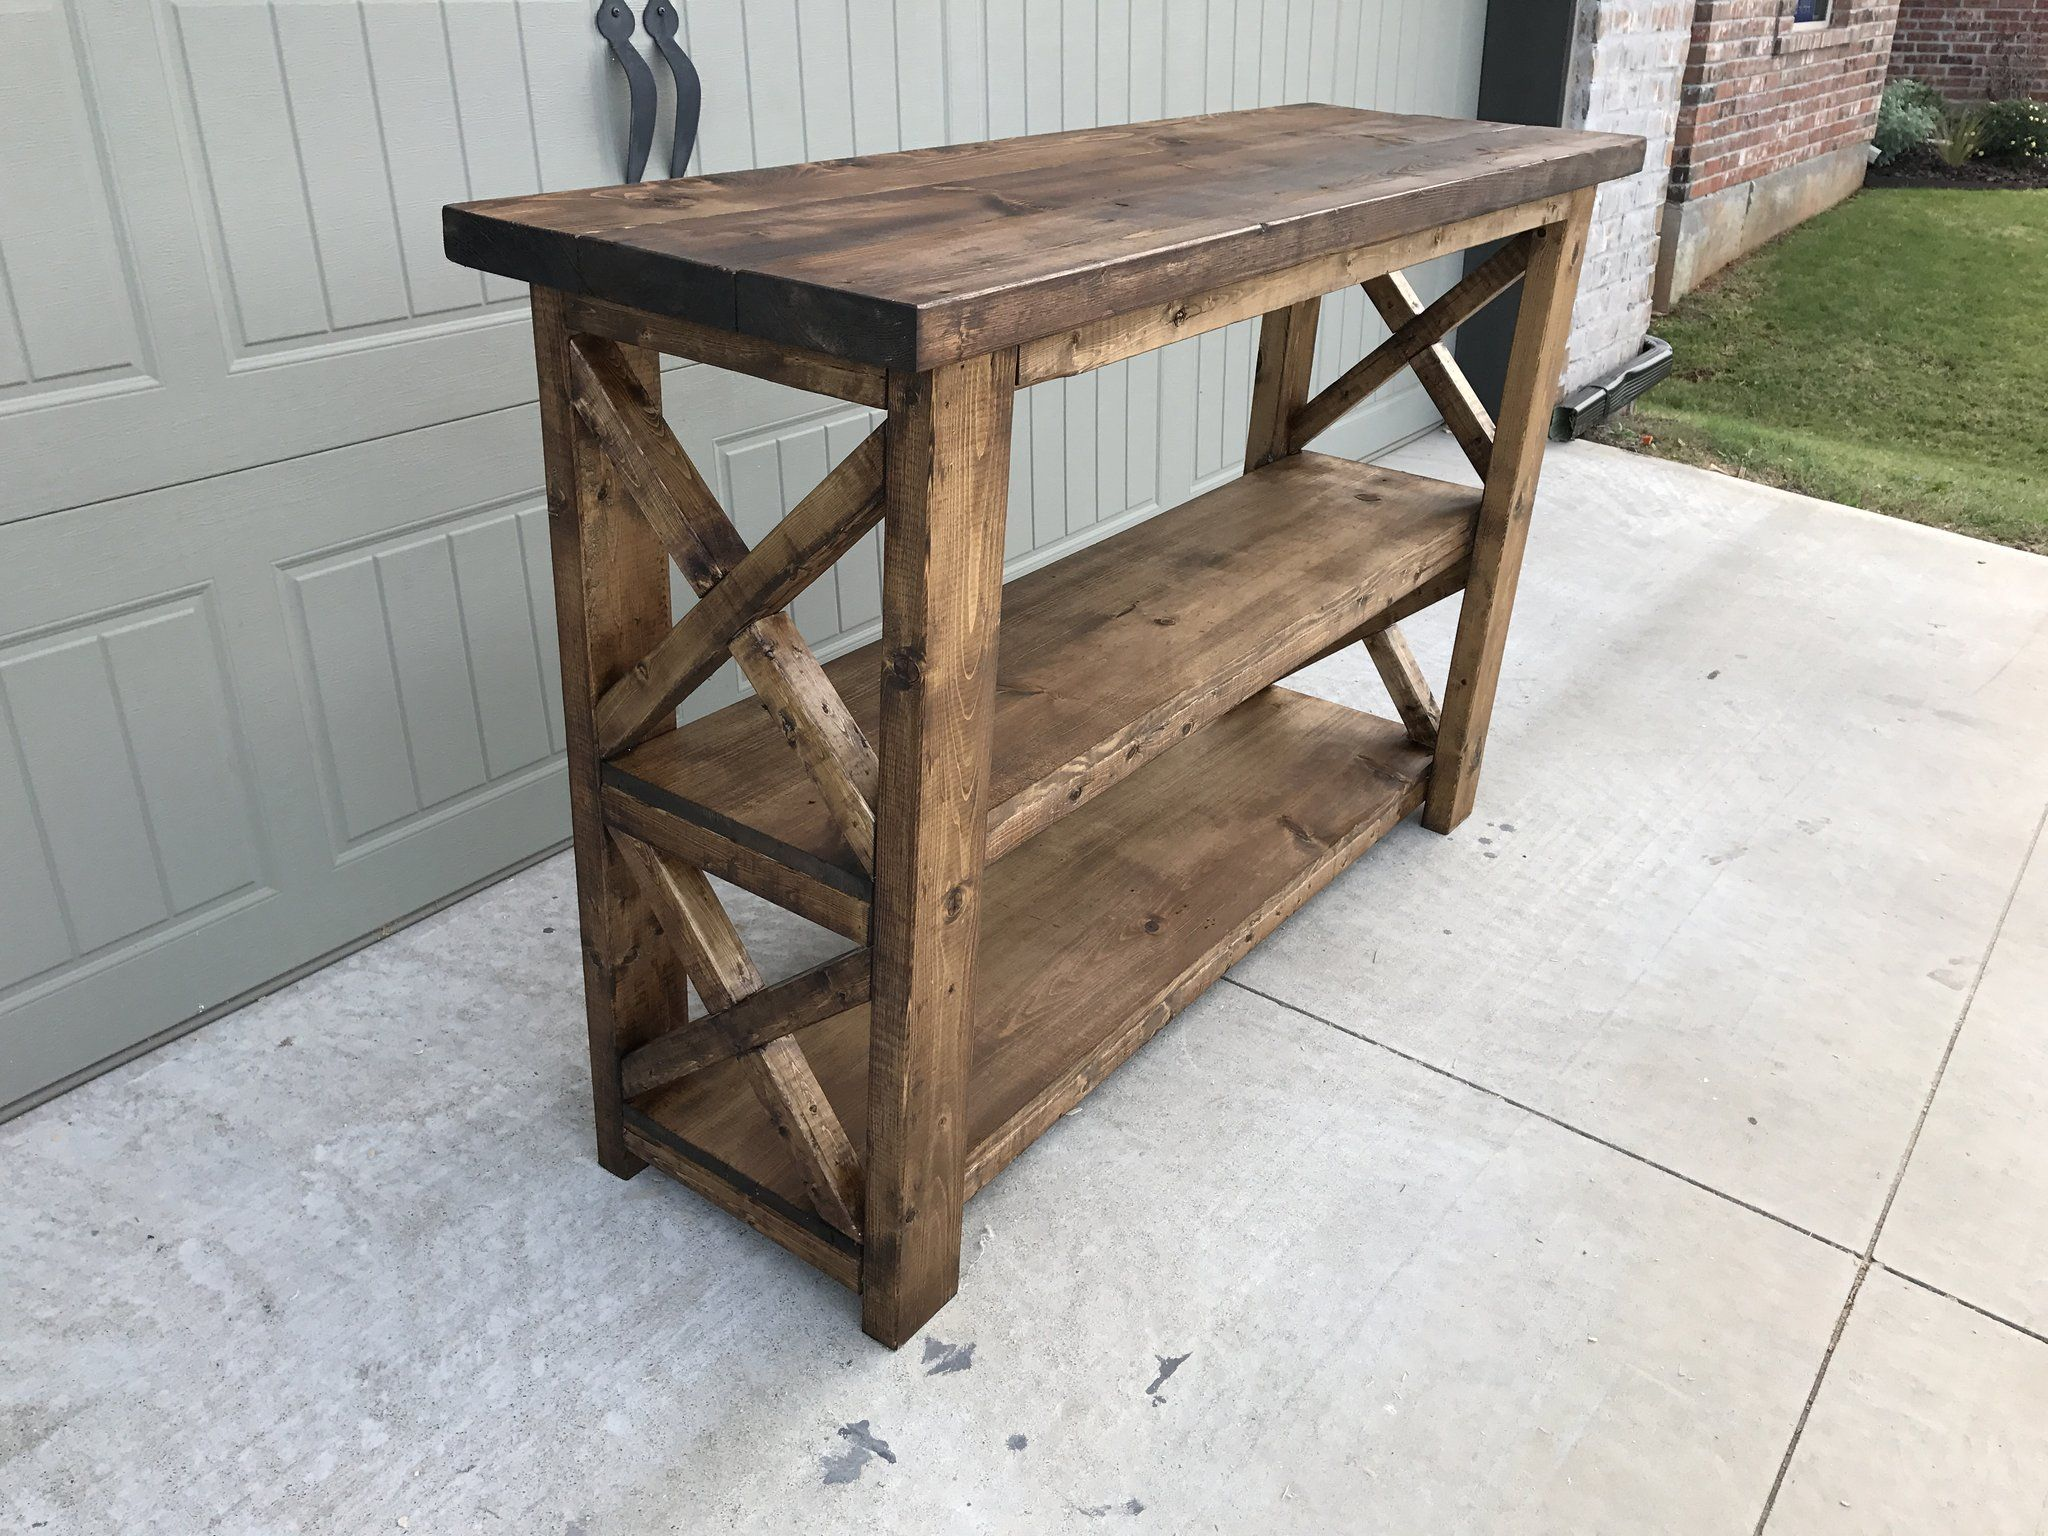 Another Console For The Books Lets Take A Look At My Build This One Is Definitely A Show Stopper Dimensions Ma Diy Console Table Wood Diy Diy Wood Projects